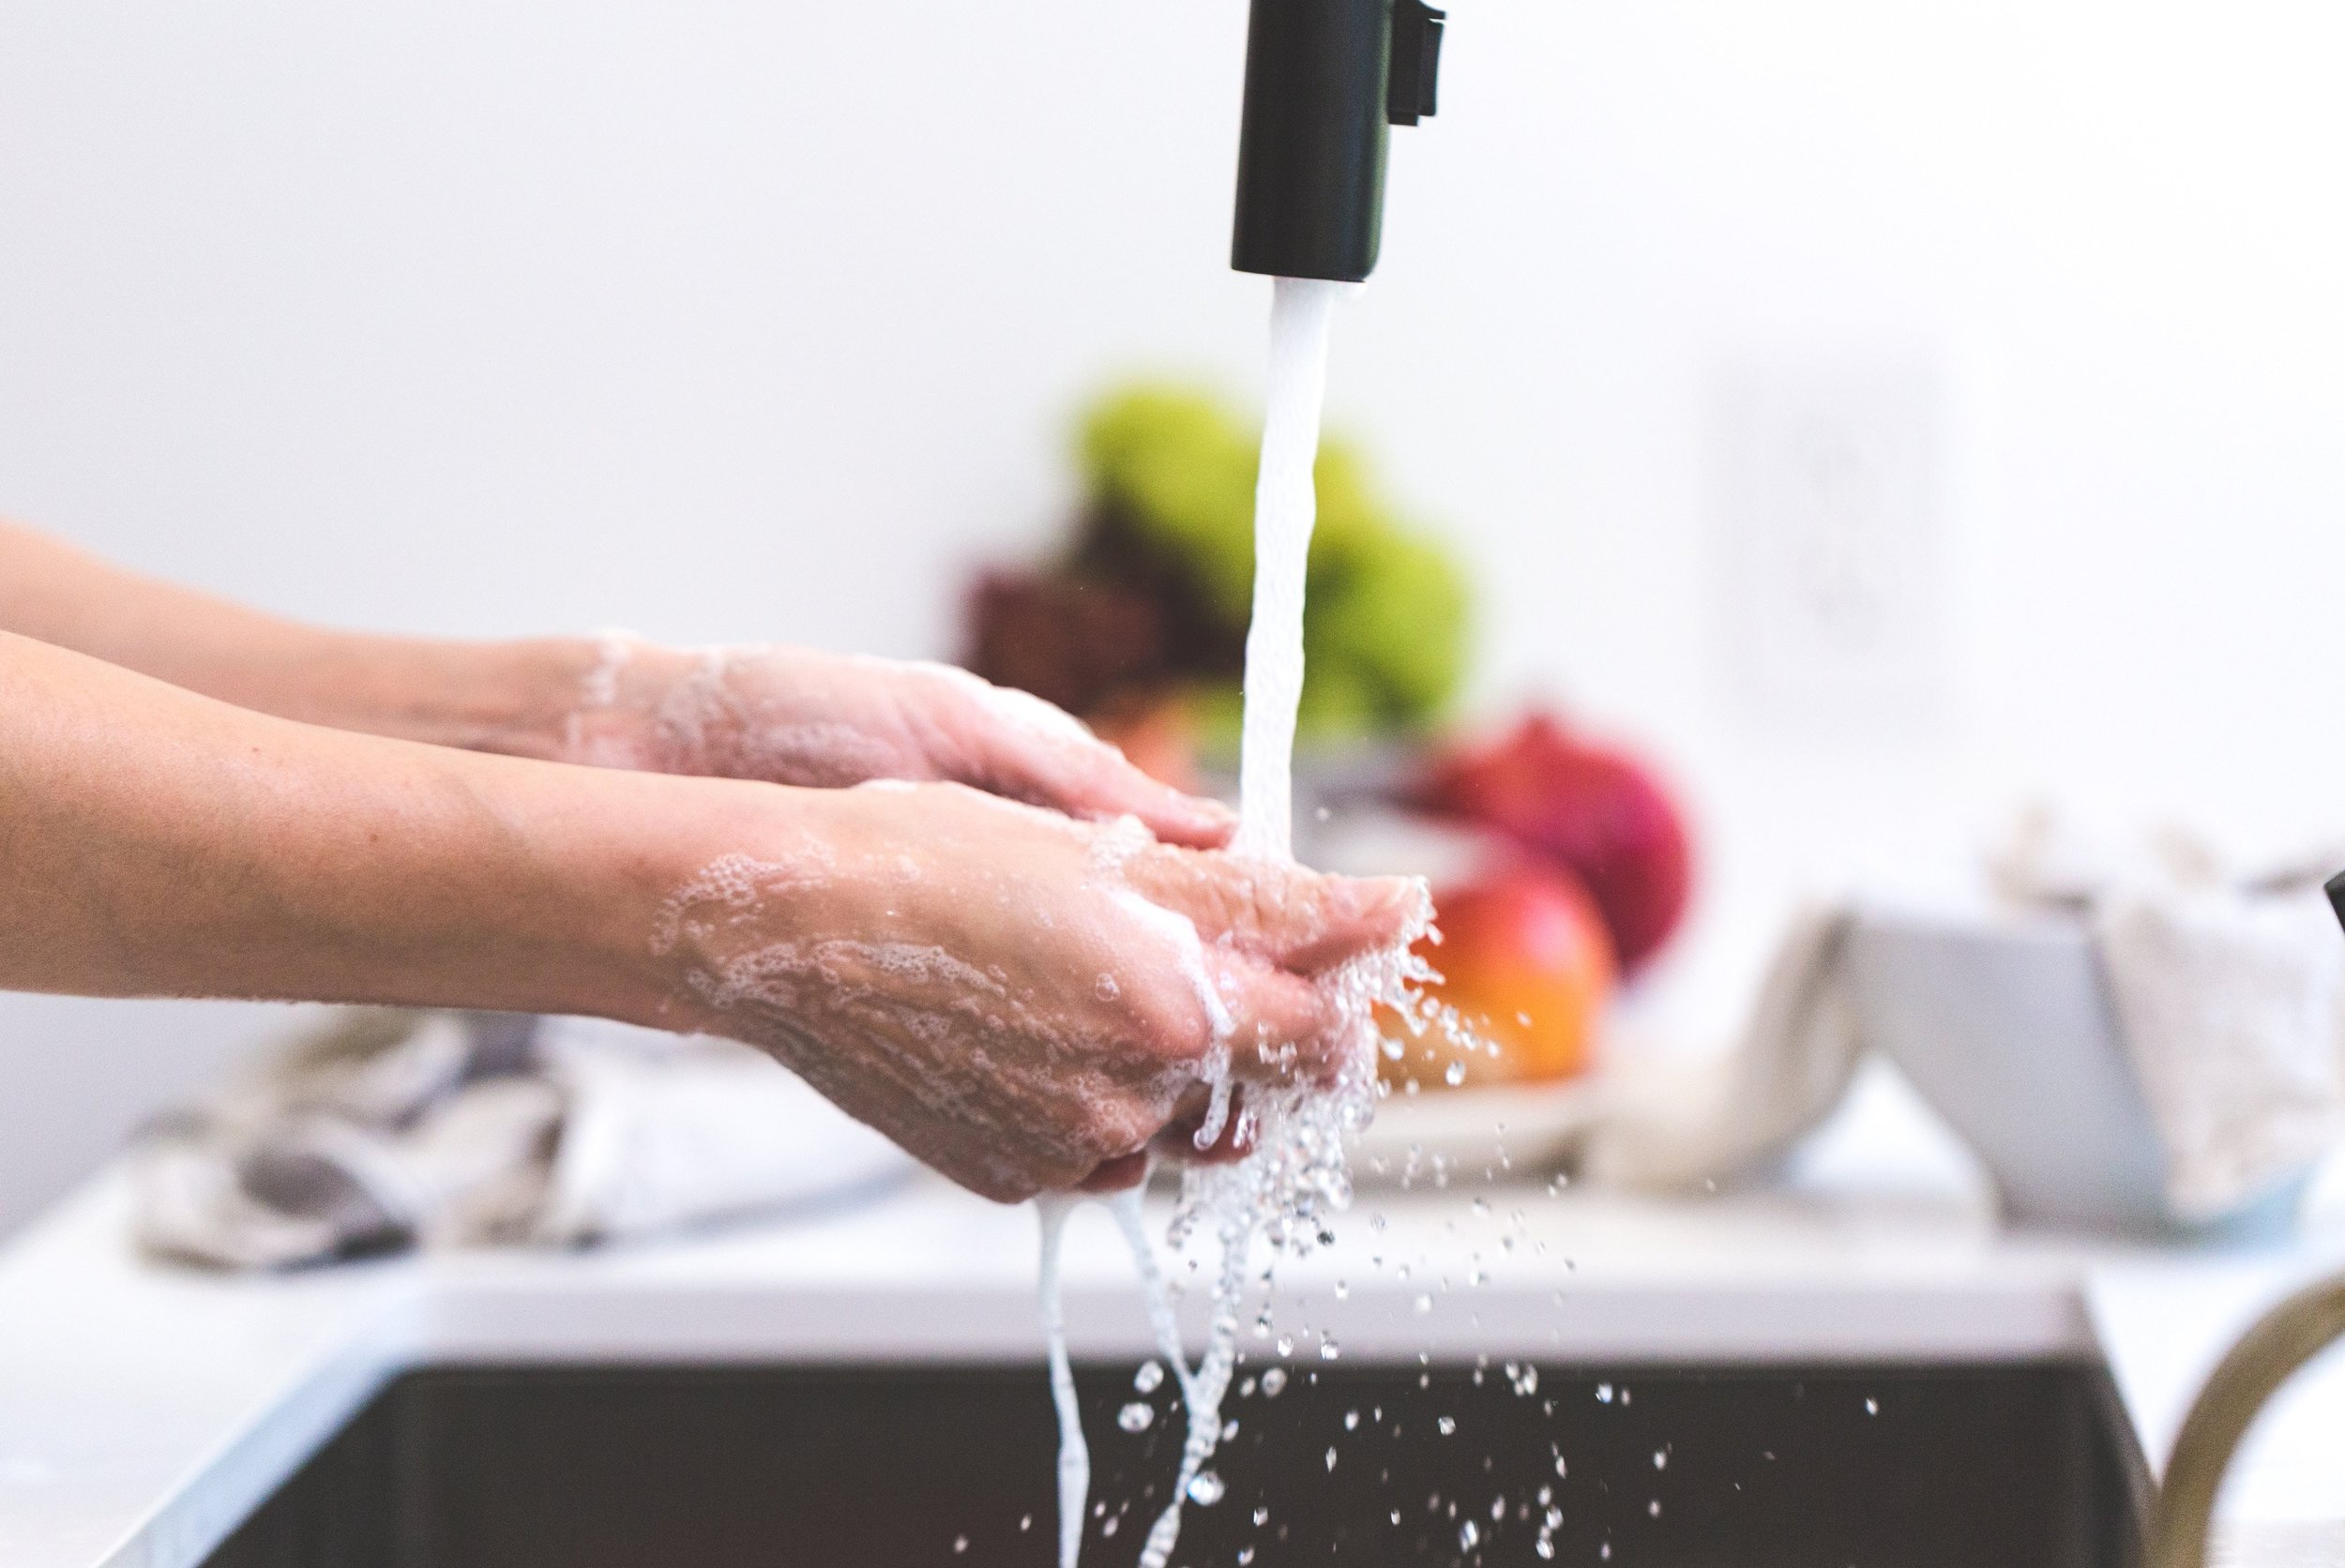 cleaning-cooking-hands-545013.jpg